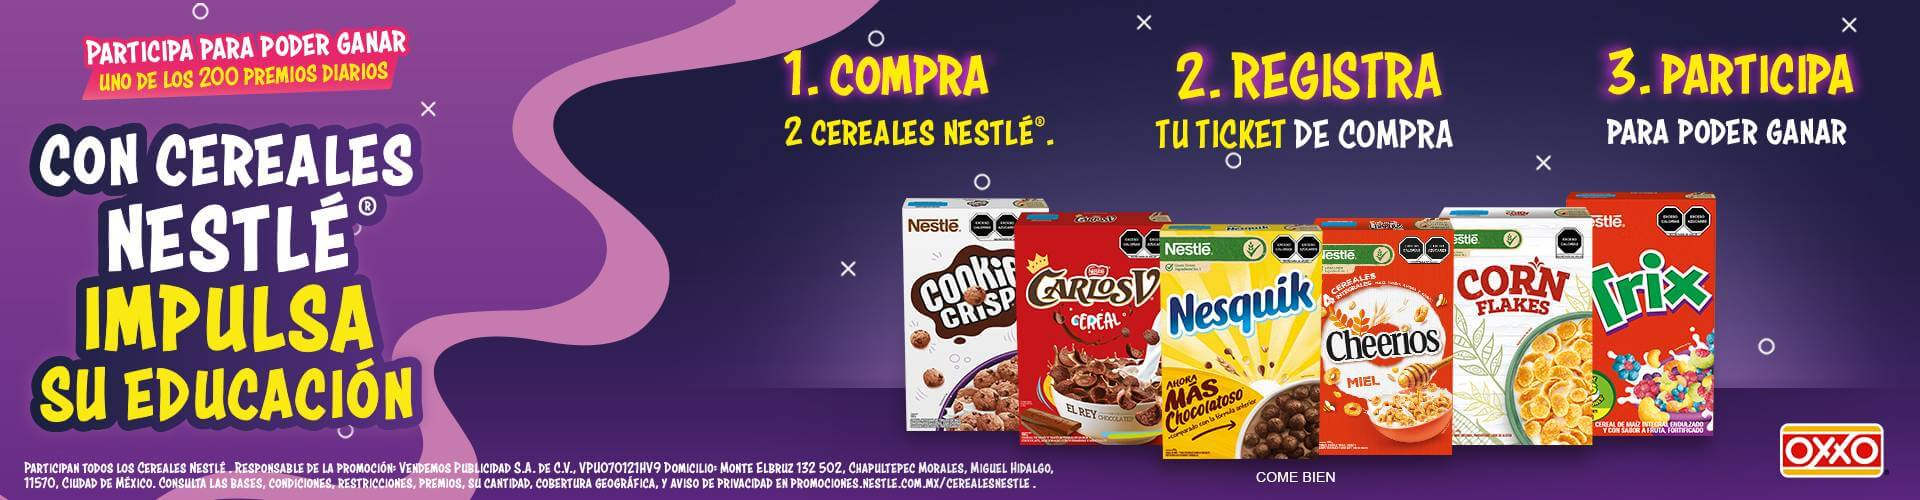 OXXO Home Cereales Nestle P8 2021